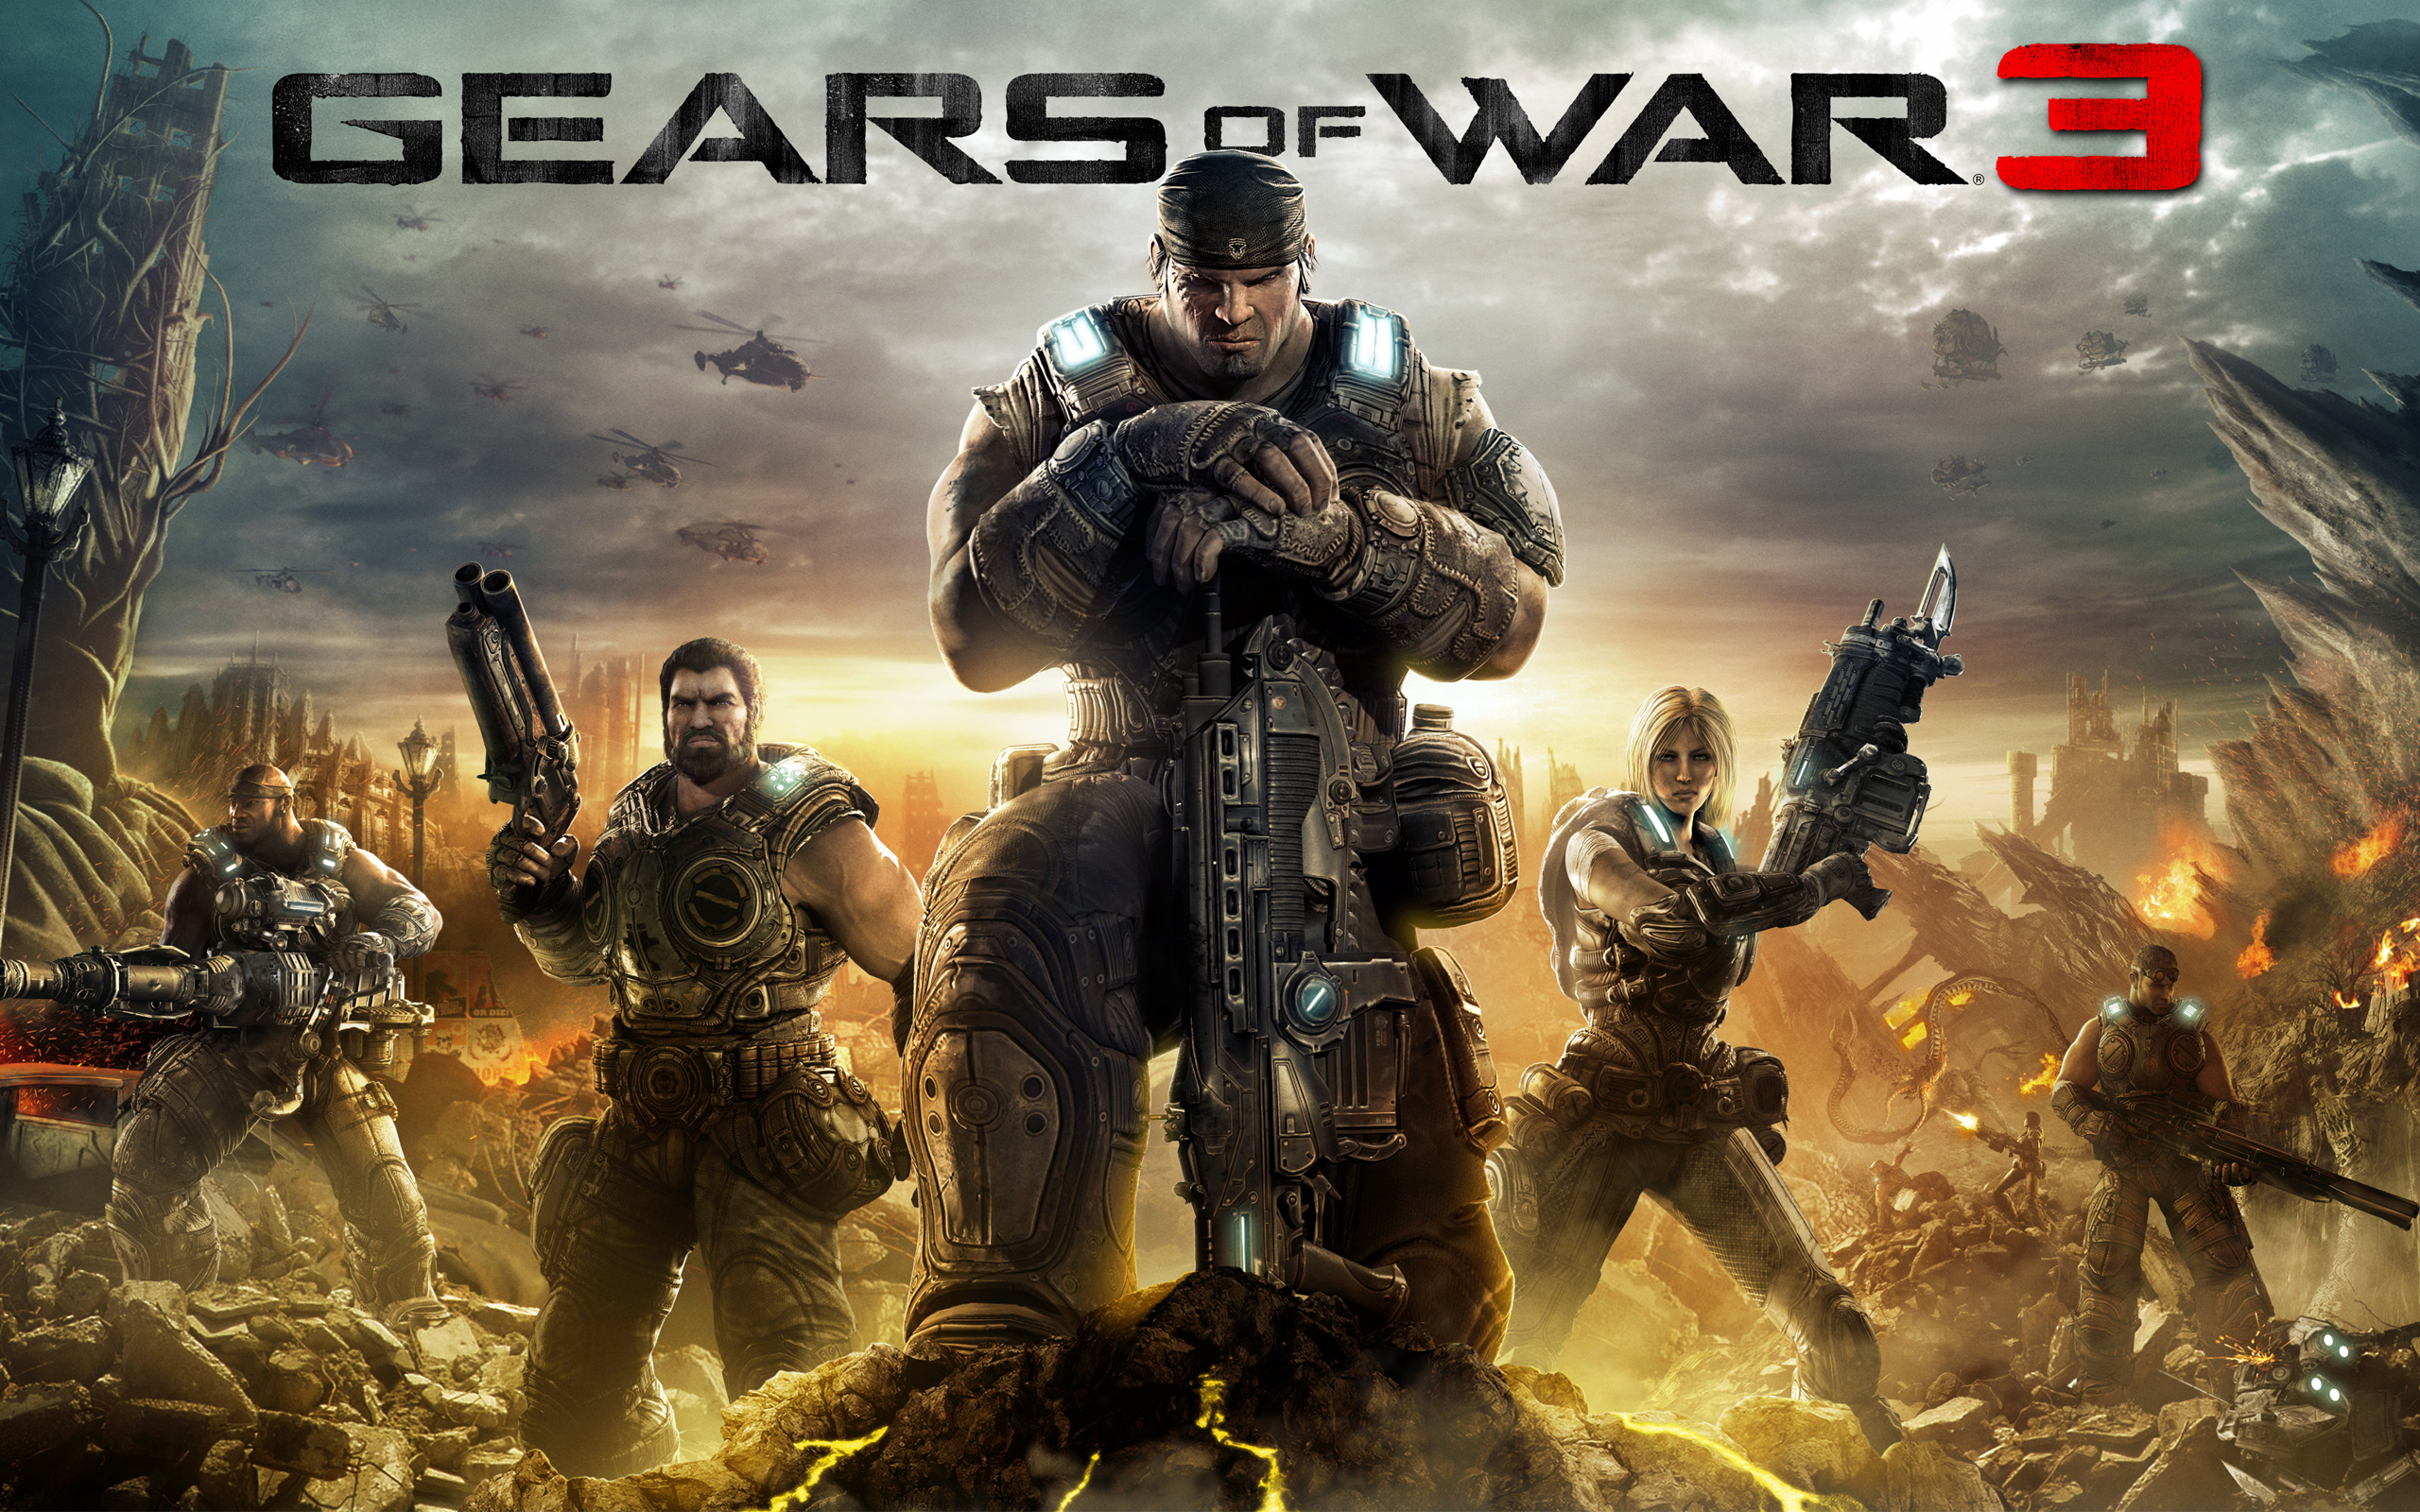 Free Gears of War 3 Wallpaper